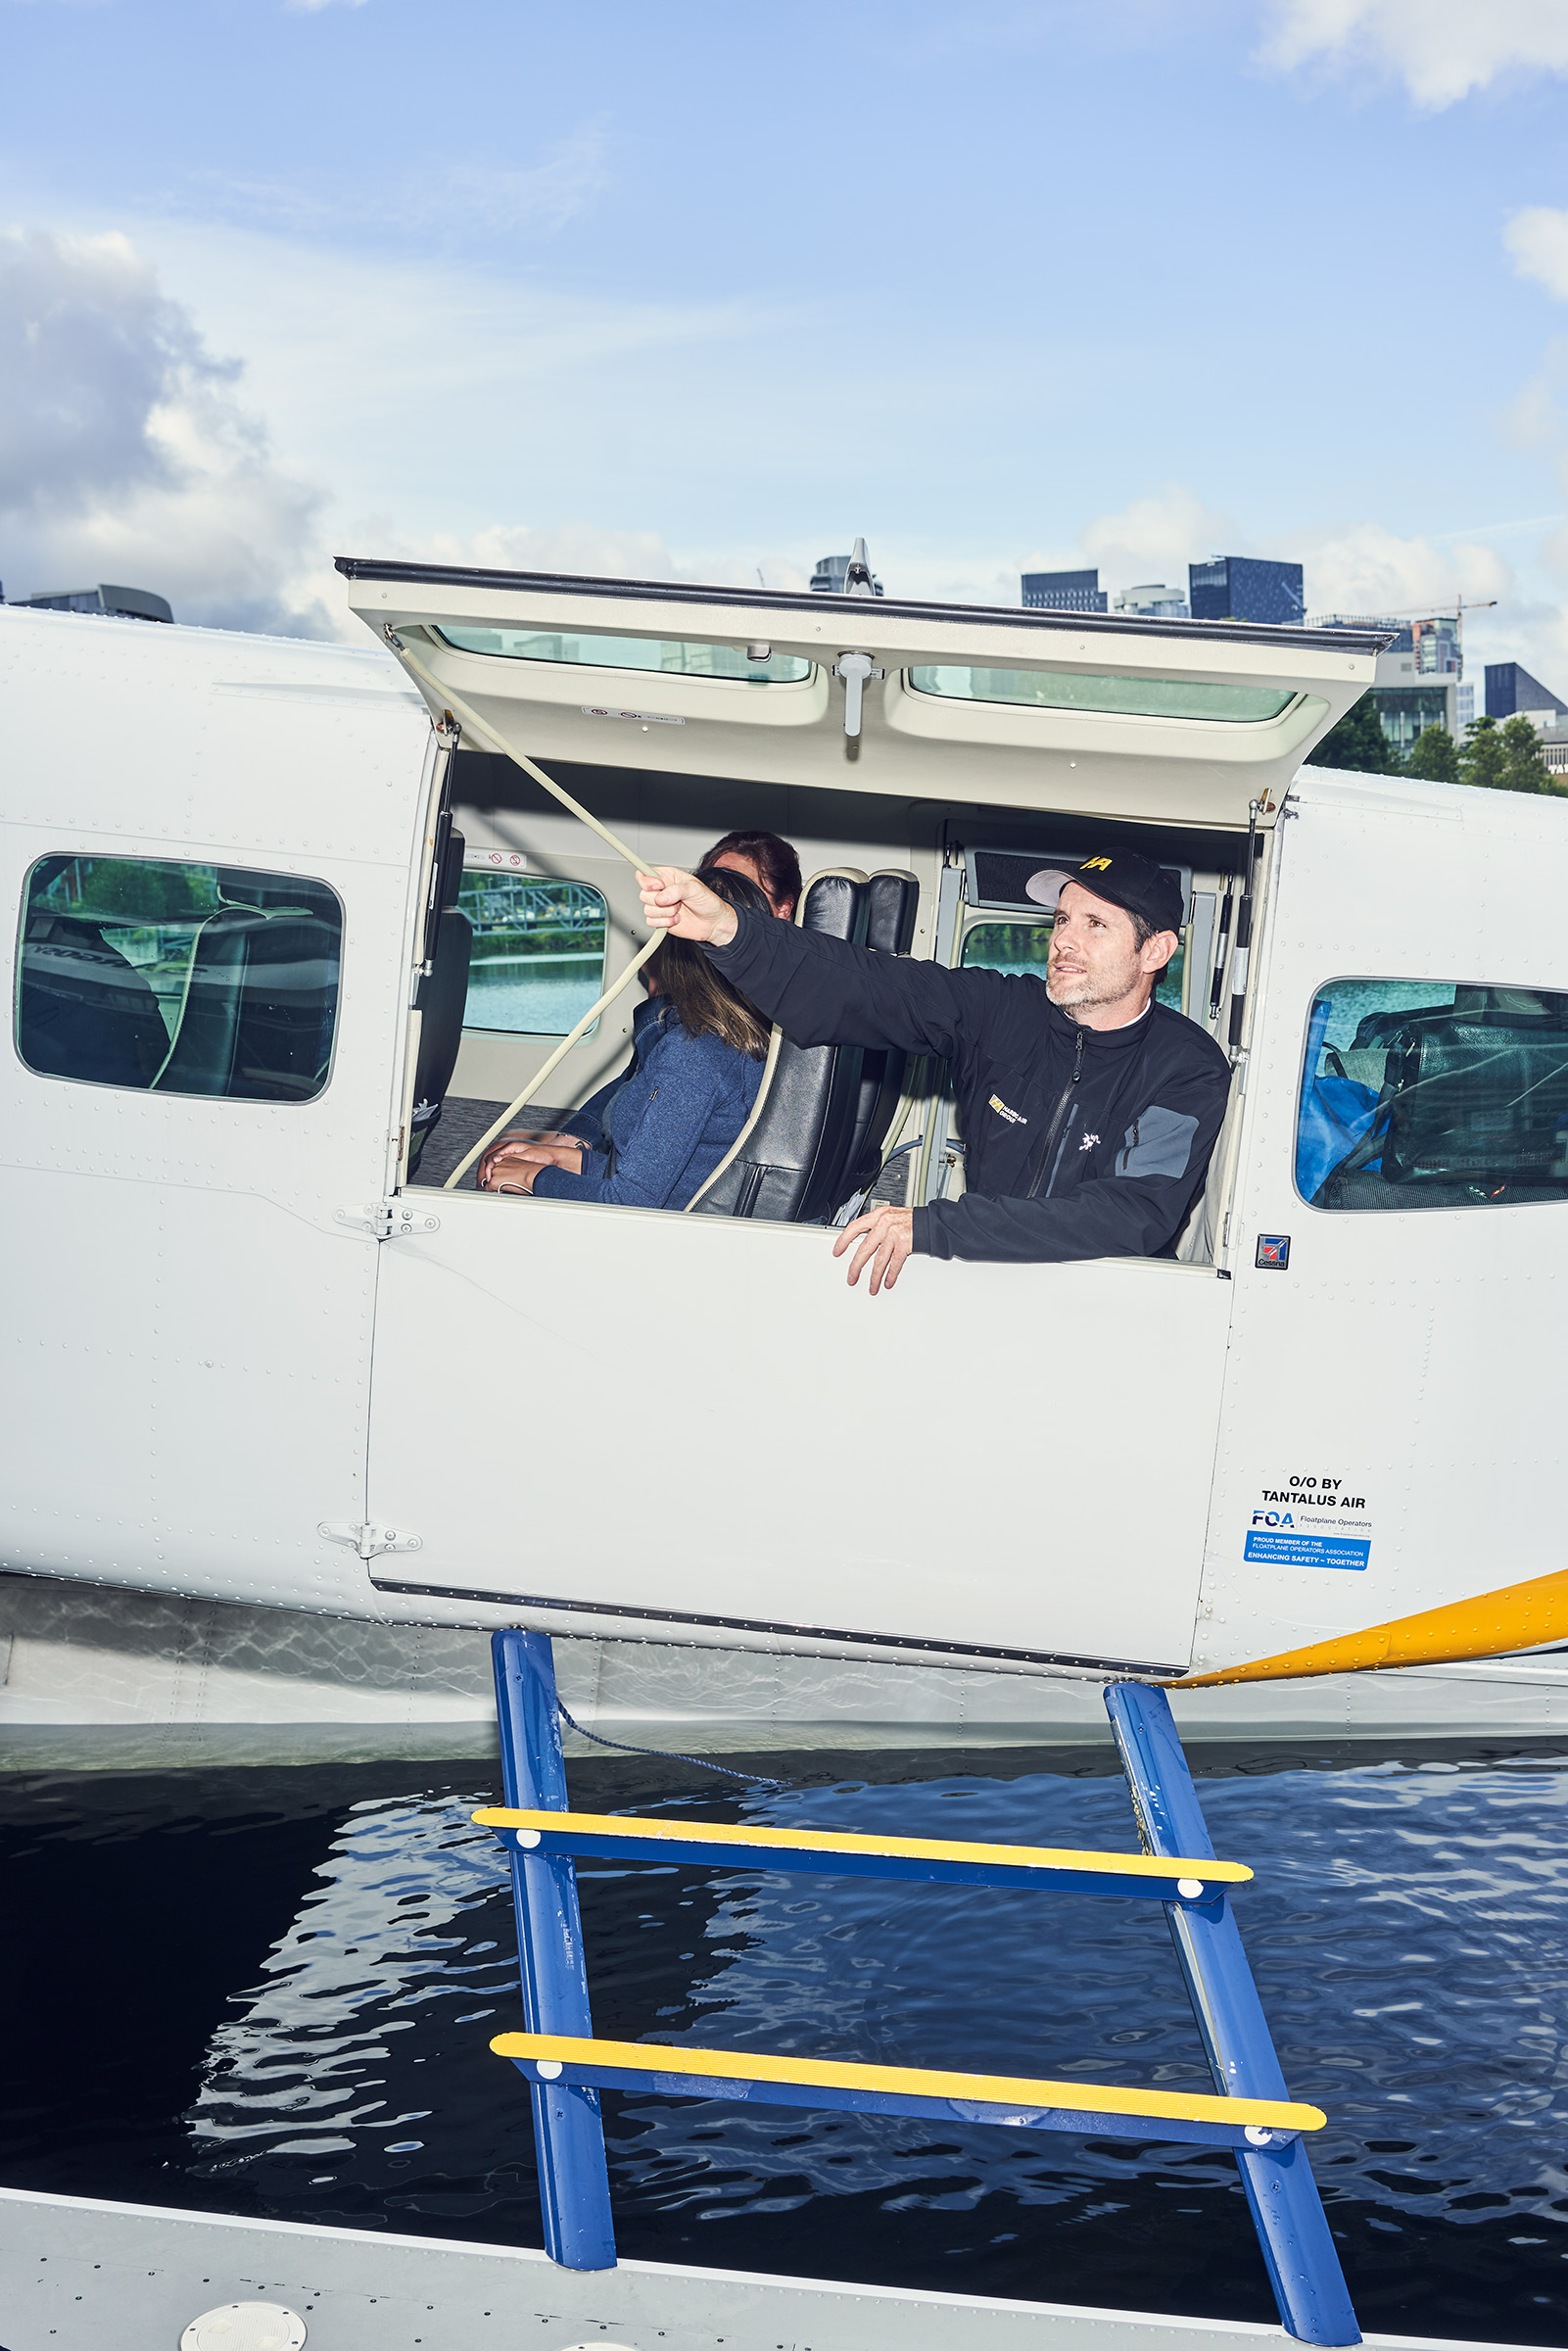 A Harbour Air crew member prepares for take-off on a seaplane flying from Seattle to Vancouver on July 11. When the Vancouver-Seattle route launched last year, tech companies bought tickets in bulk so their employees could go back and forth between Canada and the United States easily.